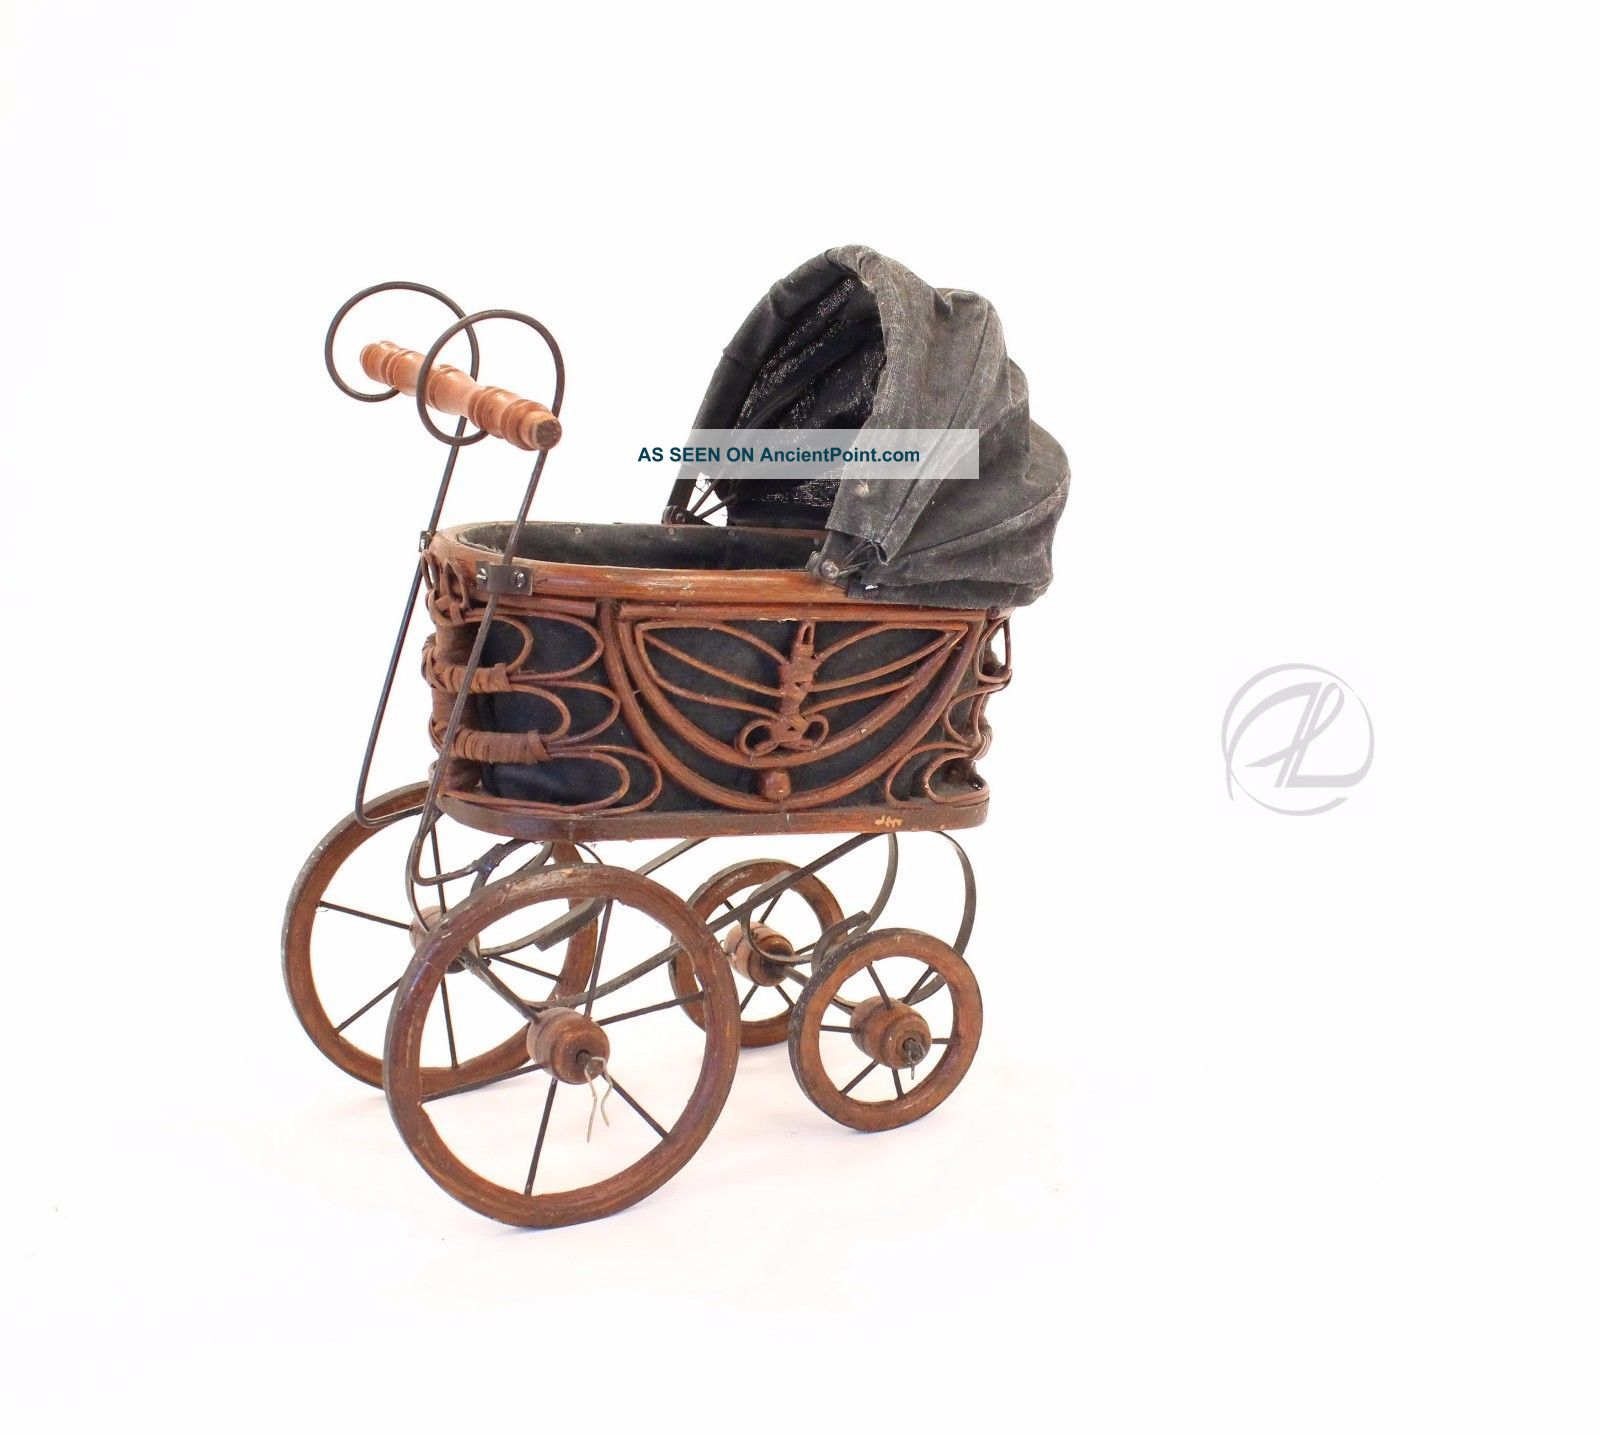 Vintage Doll Baby Carriage Victorian Stroller Wicker Metal Springs Cloth Bonnet Baby Carriages & Buggies photo